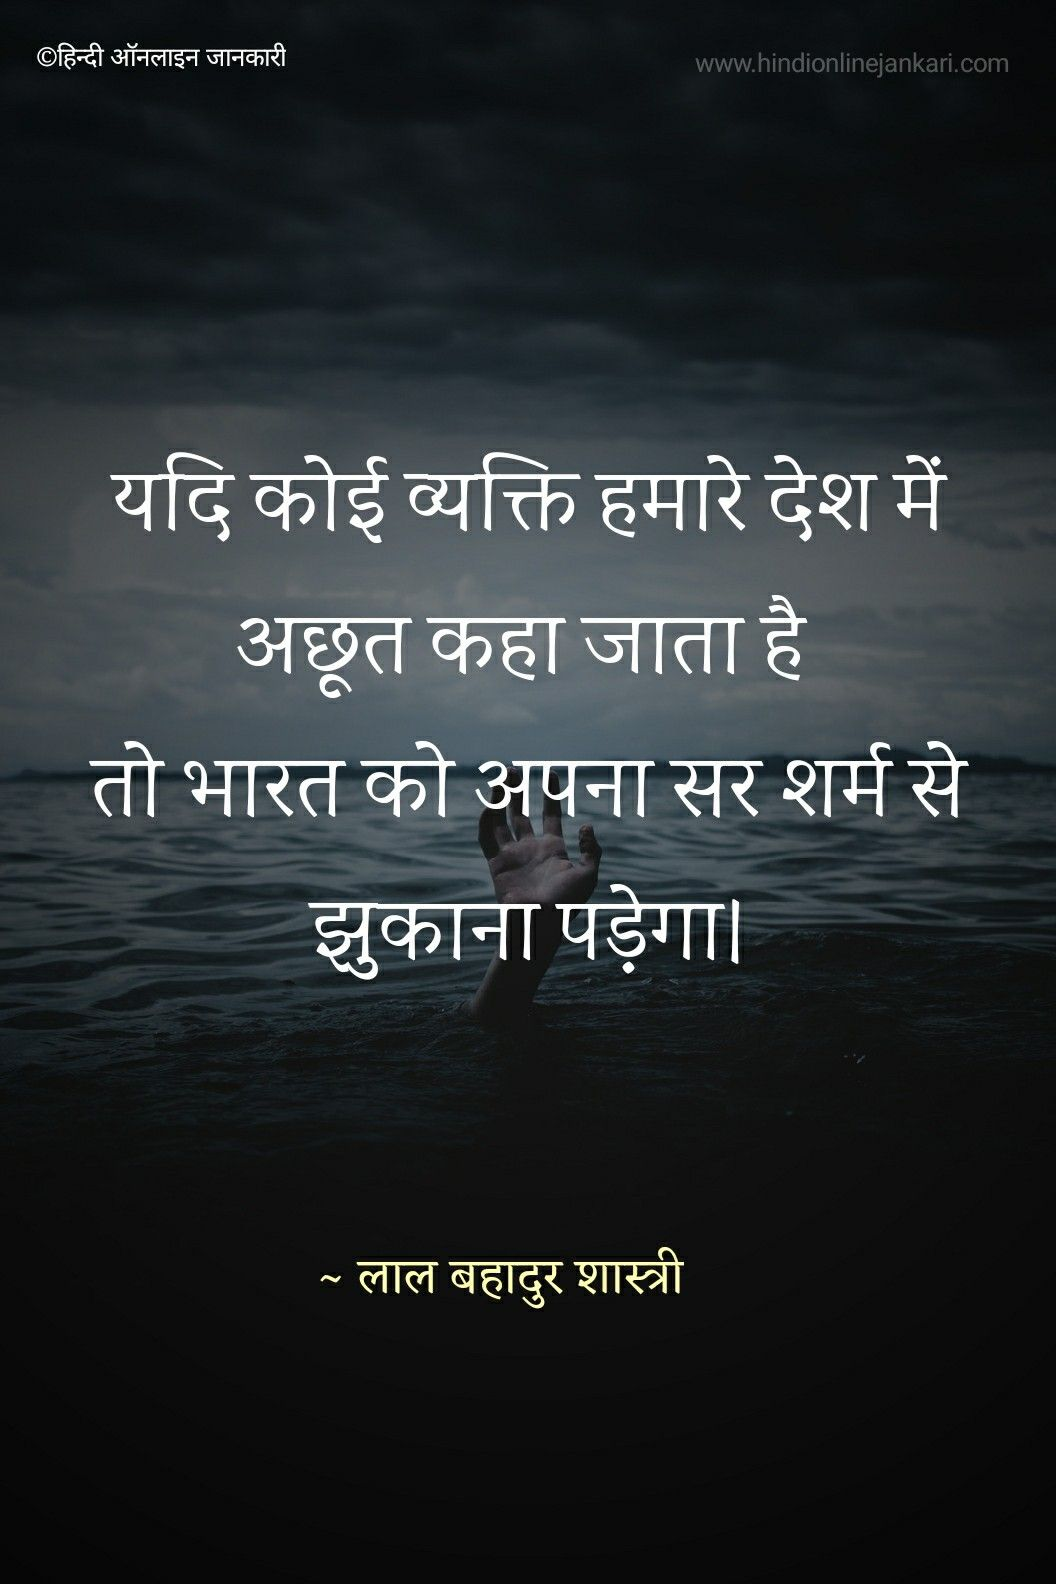 Pin on Lal Bahadur Shastri quotes in Hindi